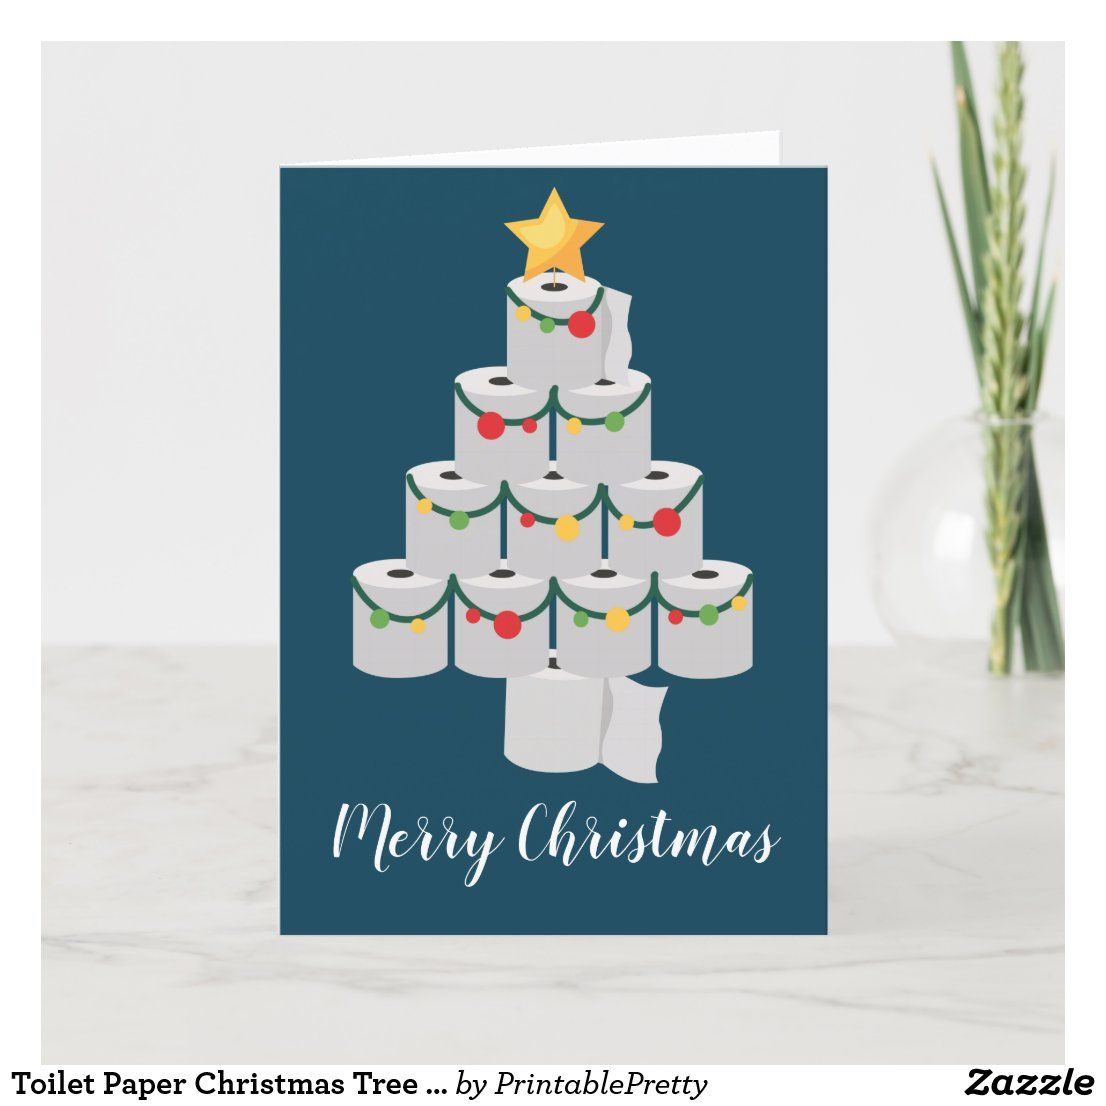 Toilet Paper Christmas Tree Funny 2020 Holiday Card Zazzle Com In 2021 Funny Xmas Cards Funny Christmas Cards Christmas Photo Cards